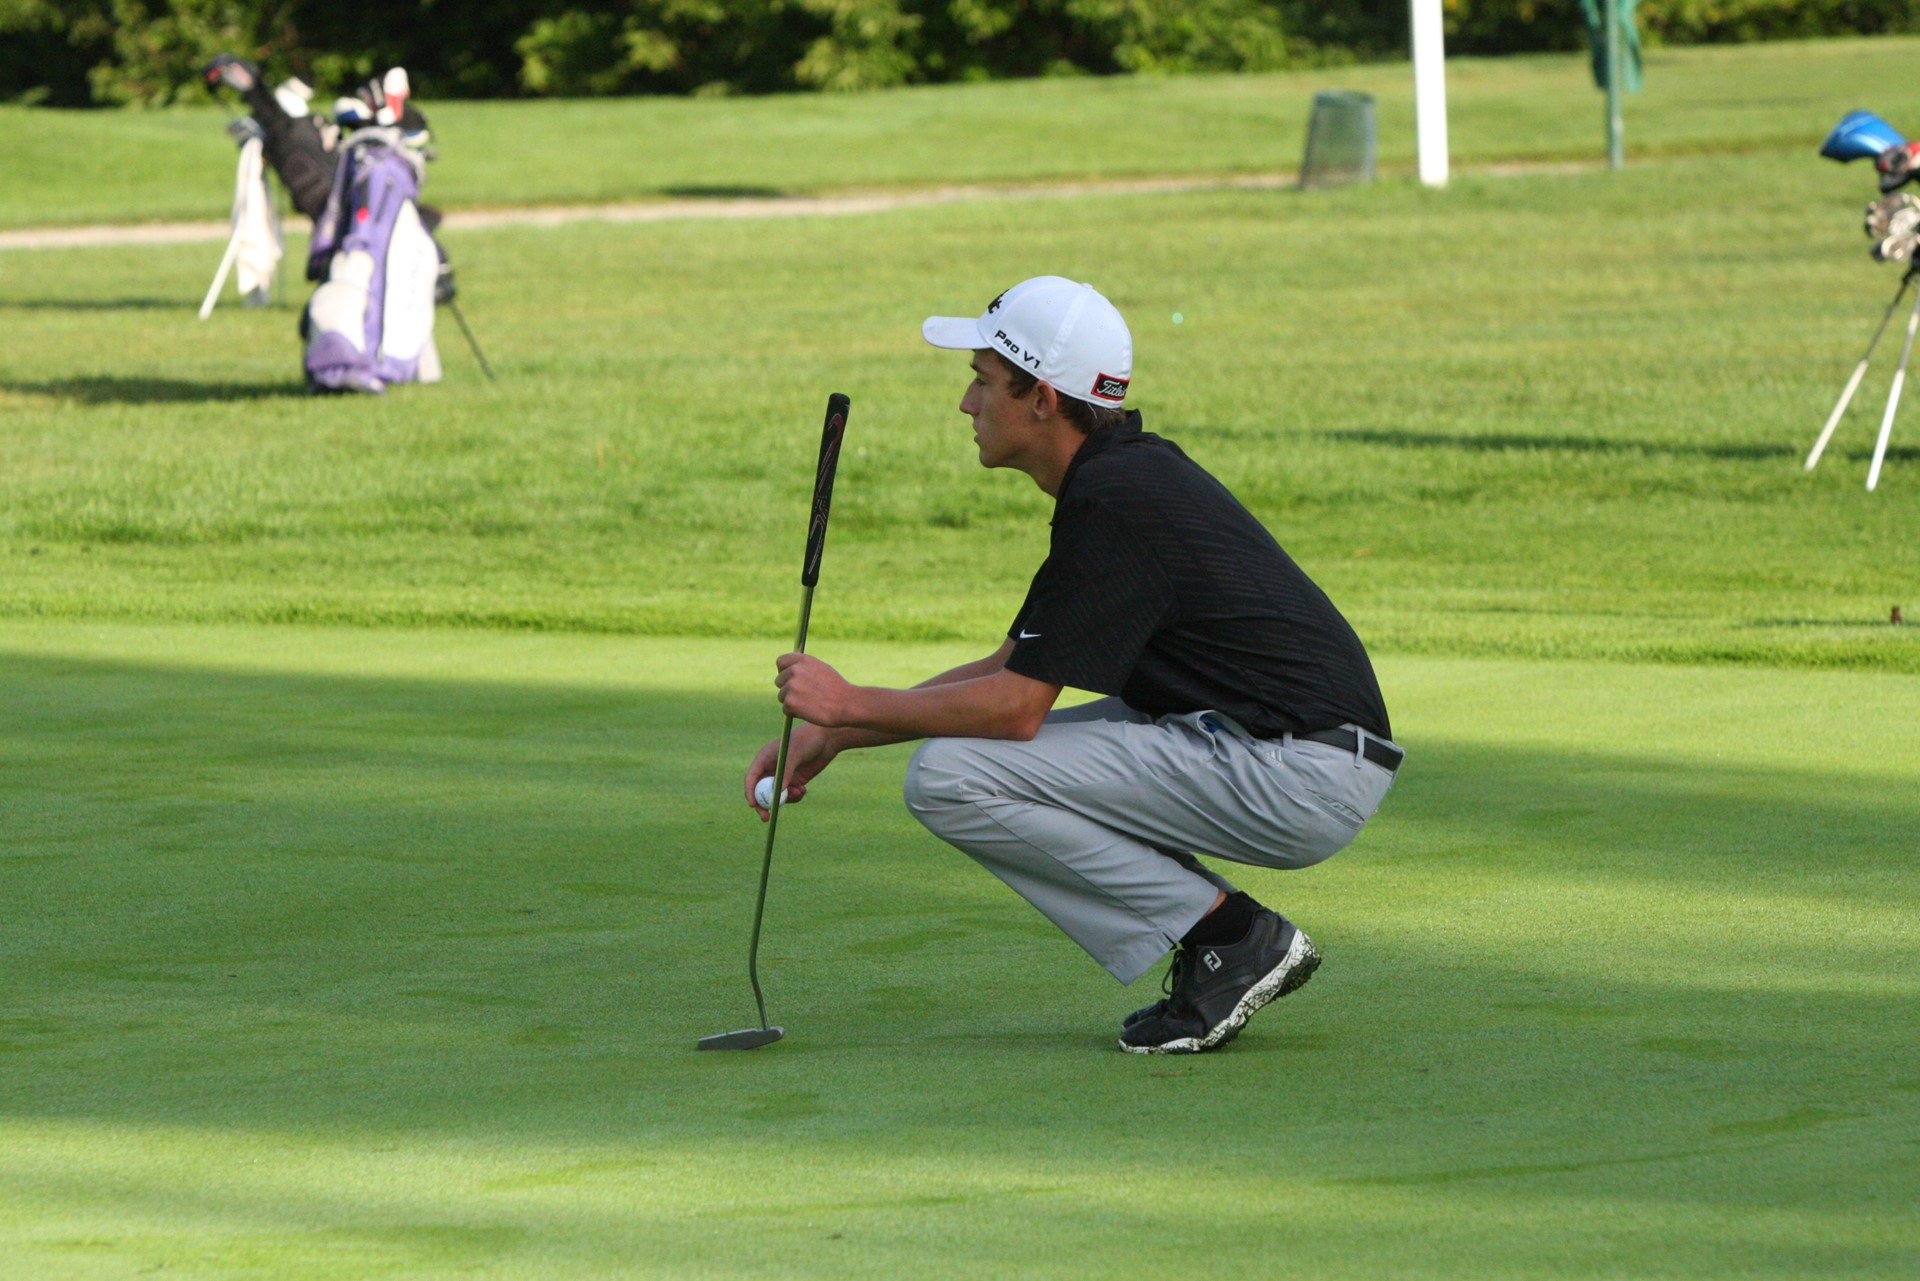 PHS student athlete pondering a putt